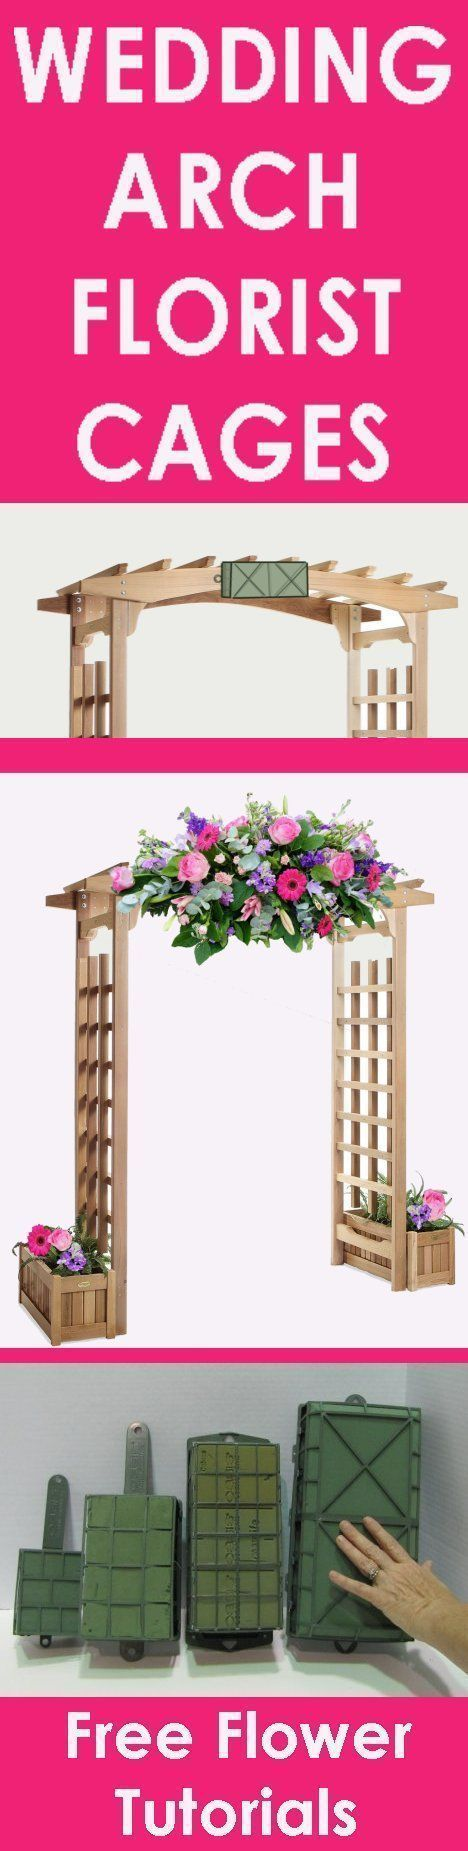 304 best wedding arches possibilities images on pinterest wedding wedding flower arch easy step by step flower tutorials learn how to make bridal bouquets wedding corsages groom boutonnieres church decorations junglespirit Image collections